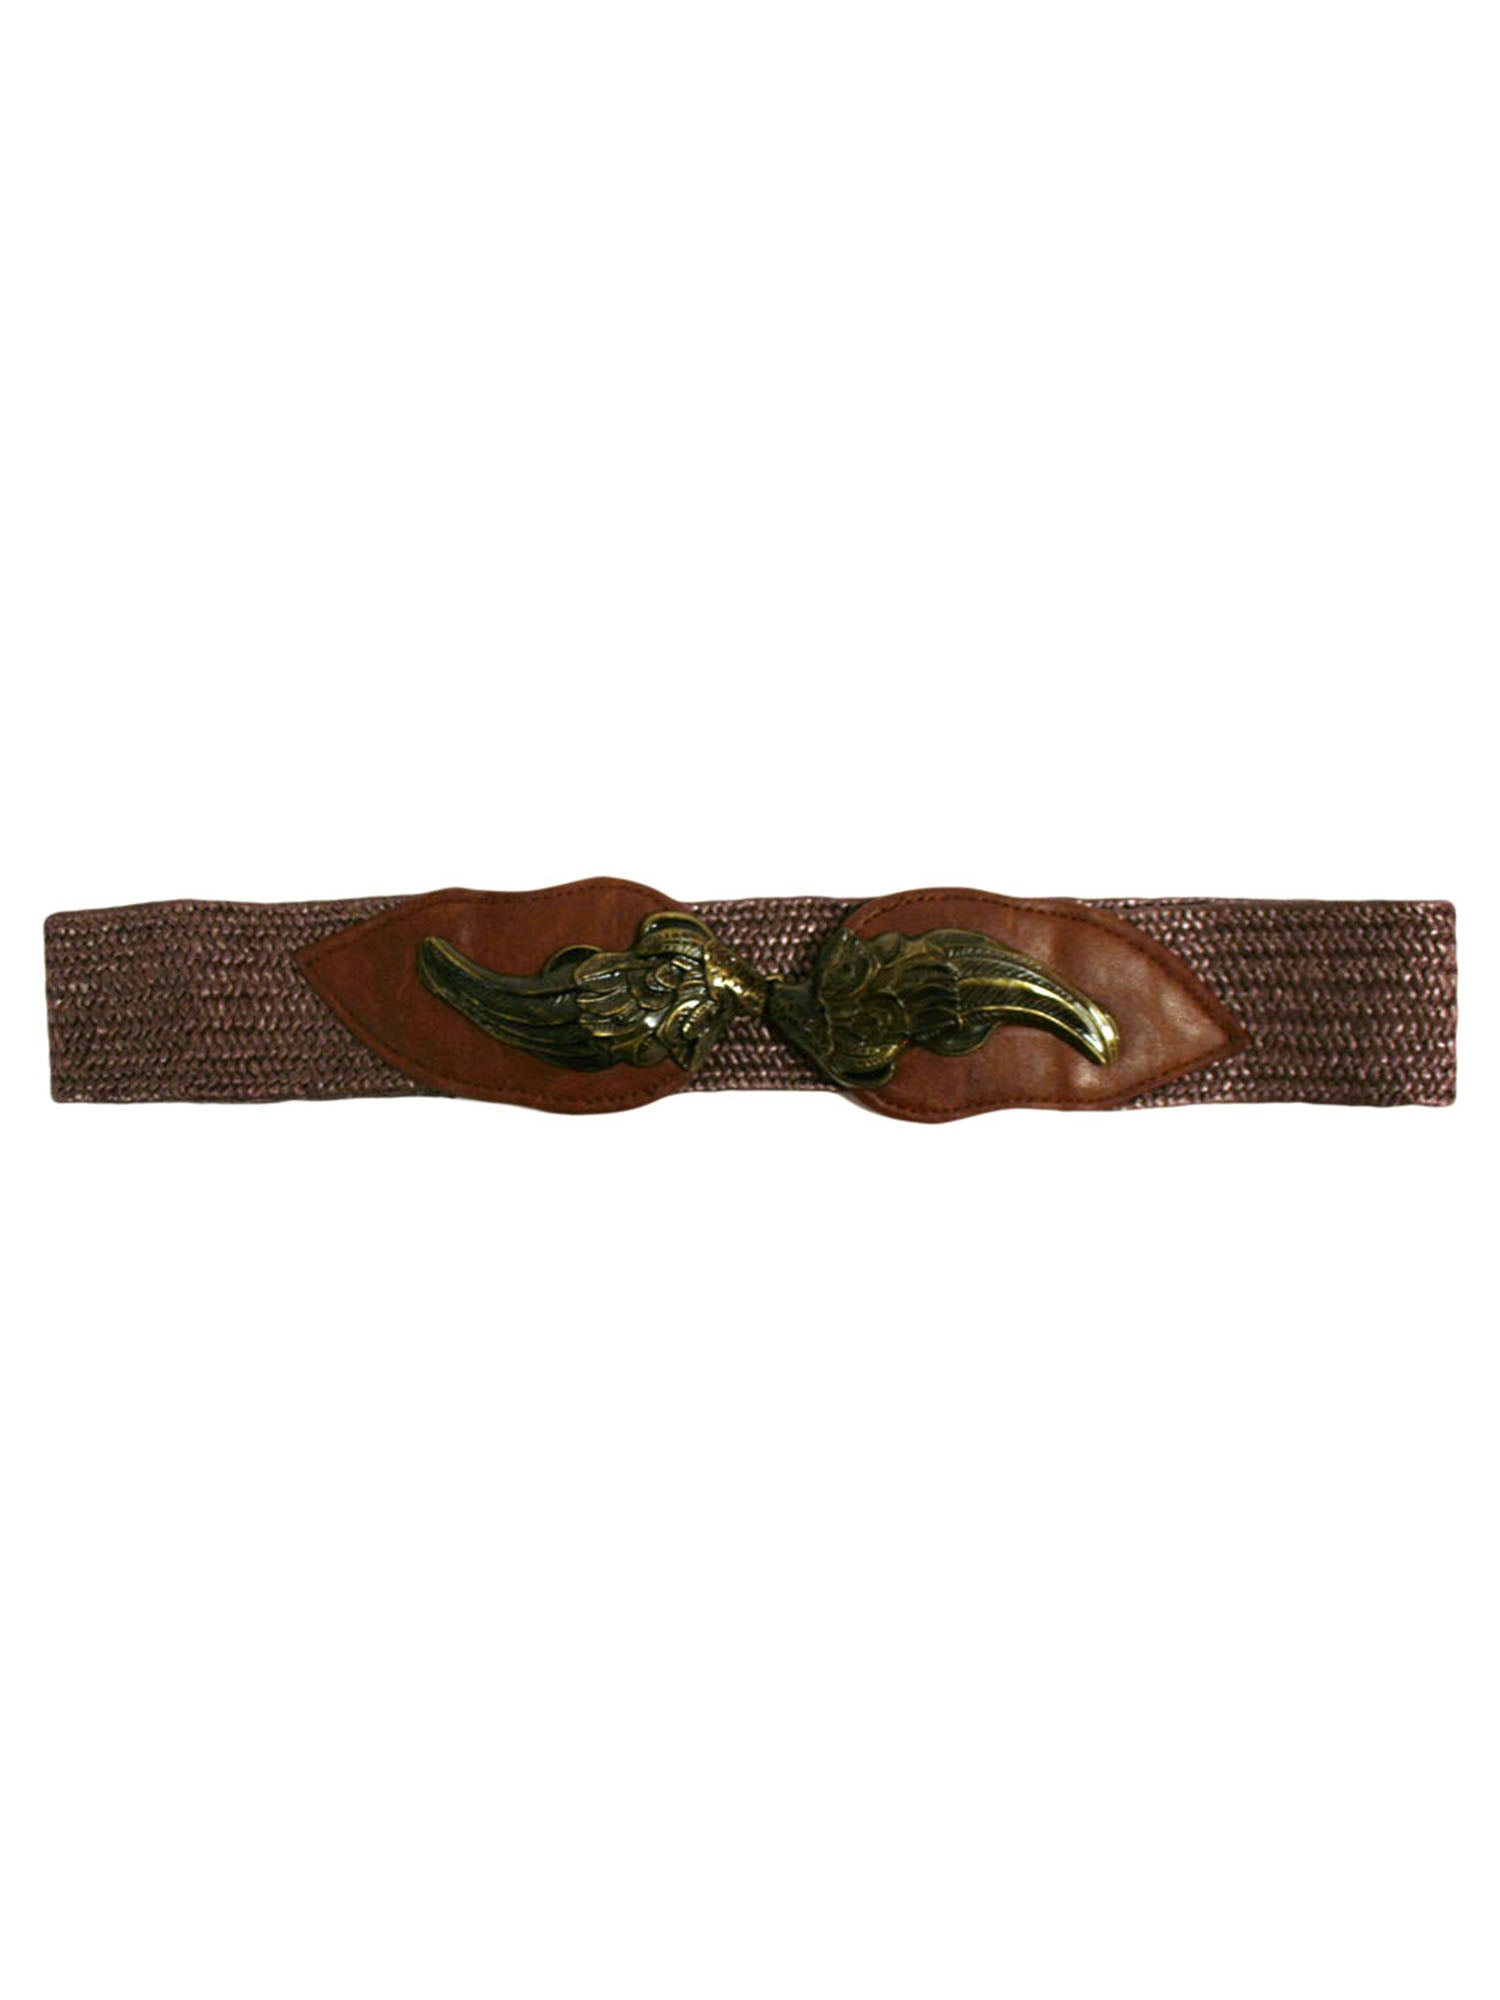 Elaborate Metal Wing Buckle Stretchy Waist Belt